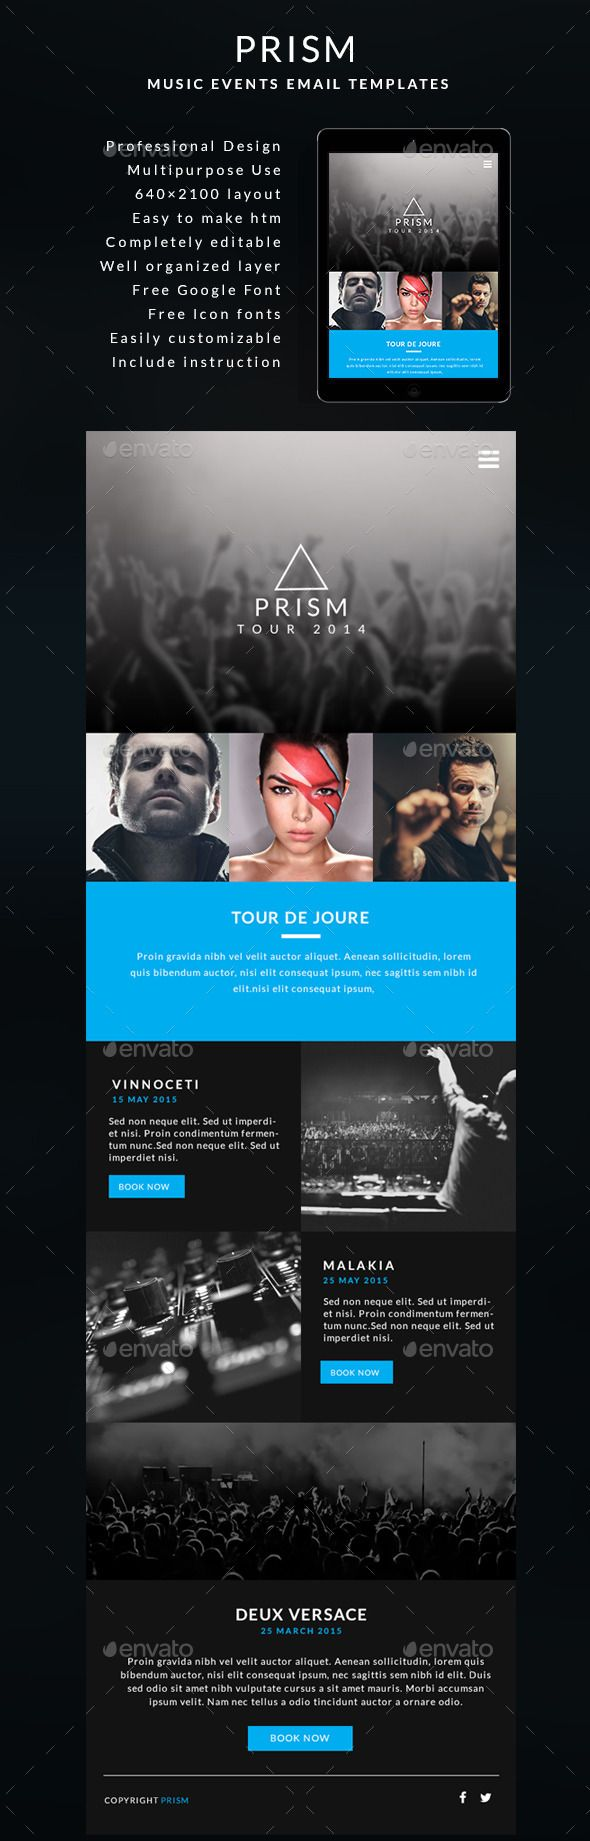 Pin By Best Graphic Design On E Newsletter Templates Templates